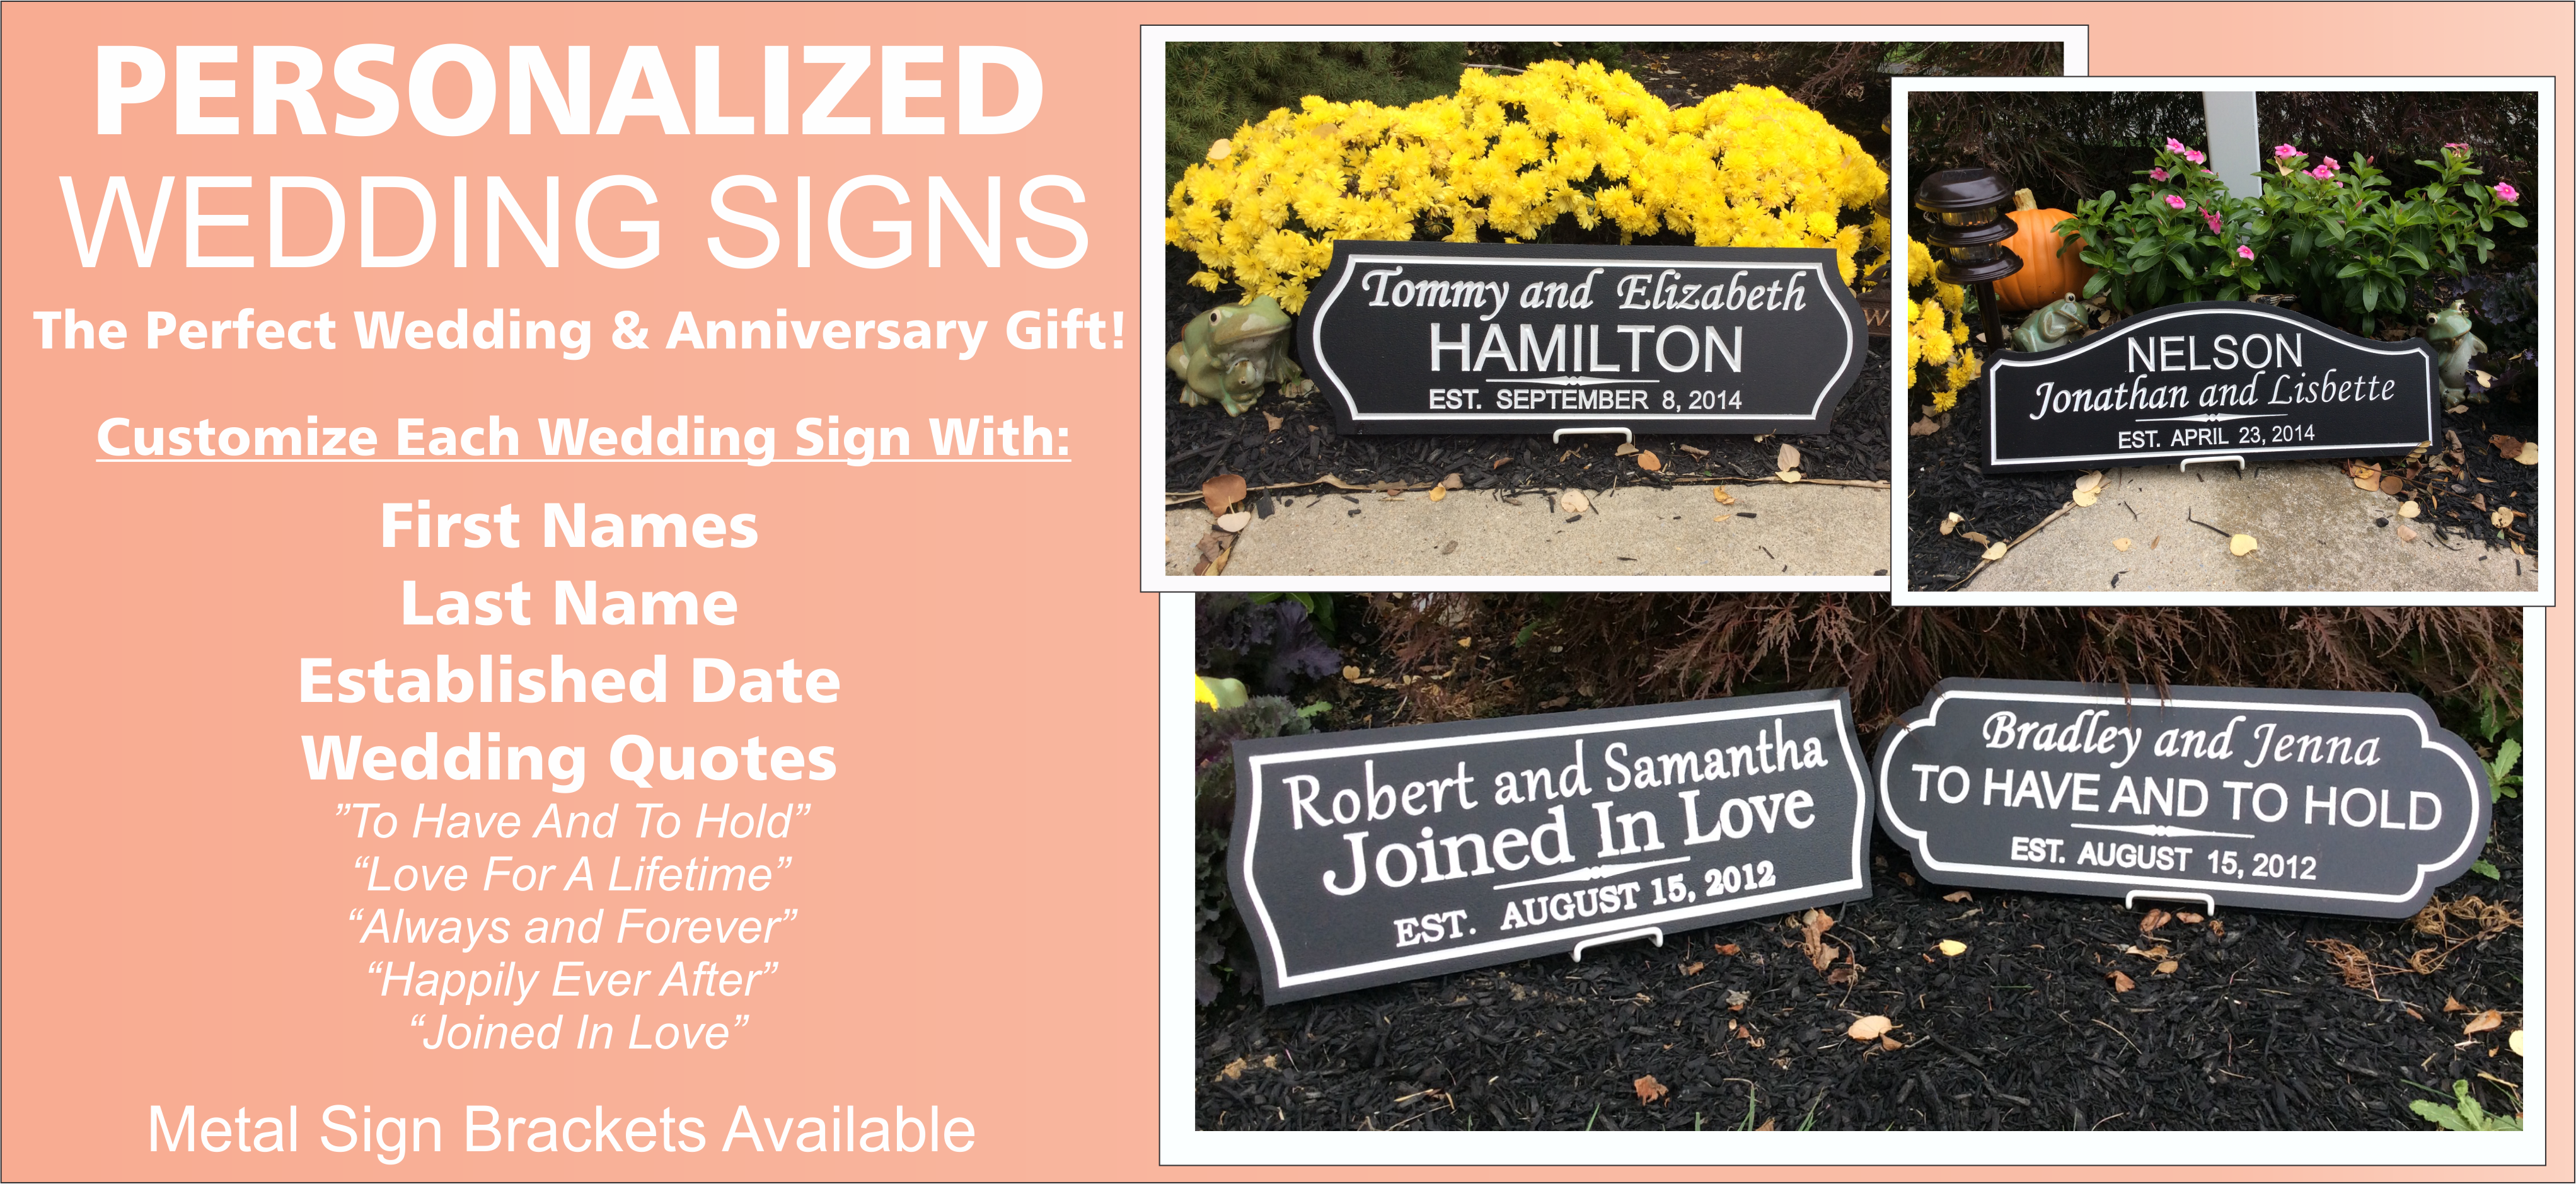 3d-clipart-carossel-image-wedding-signs.png